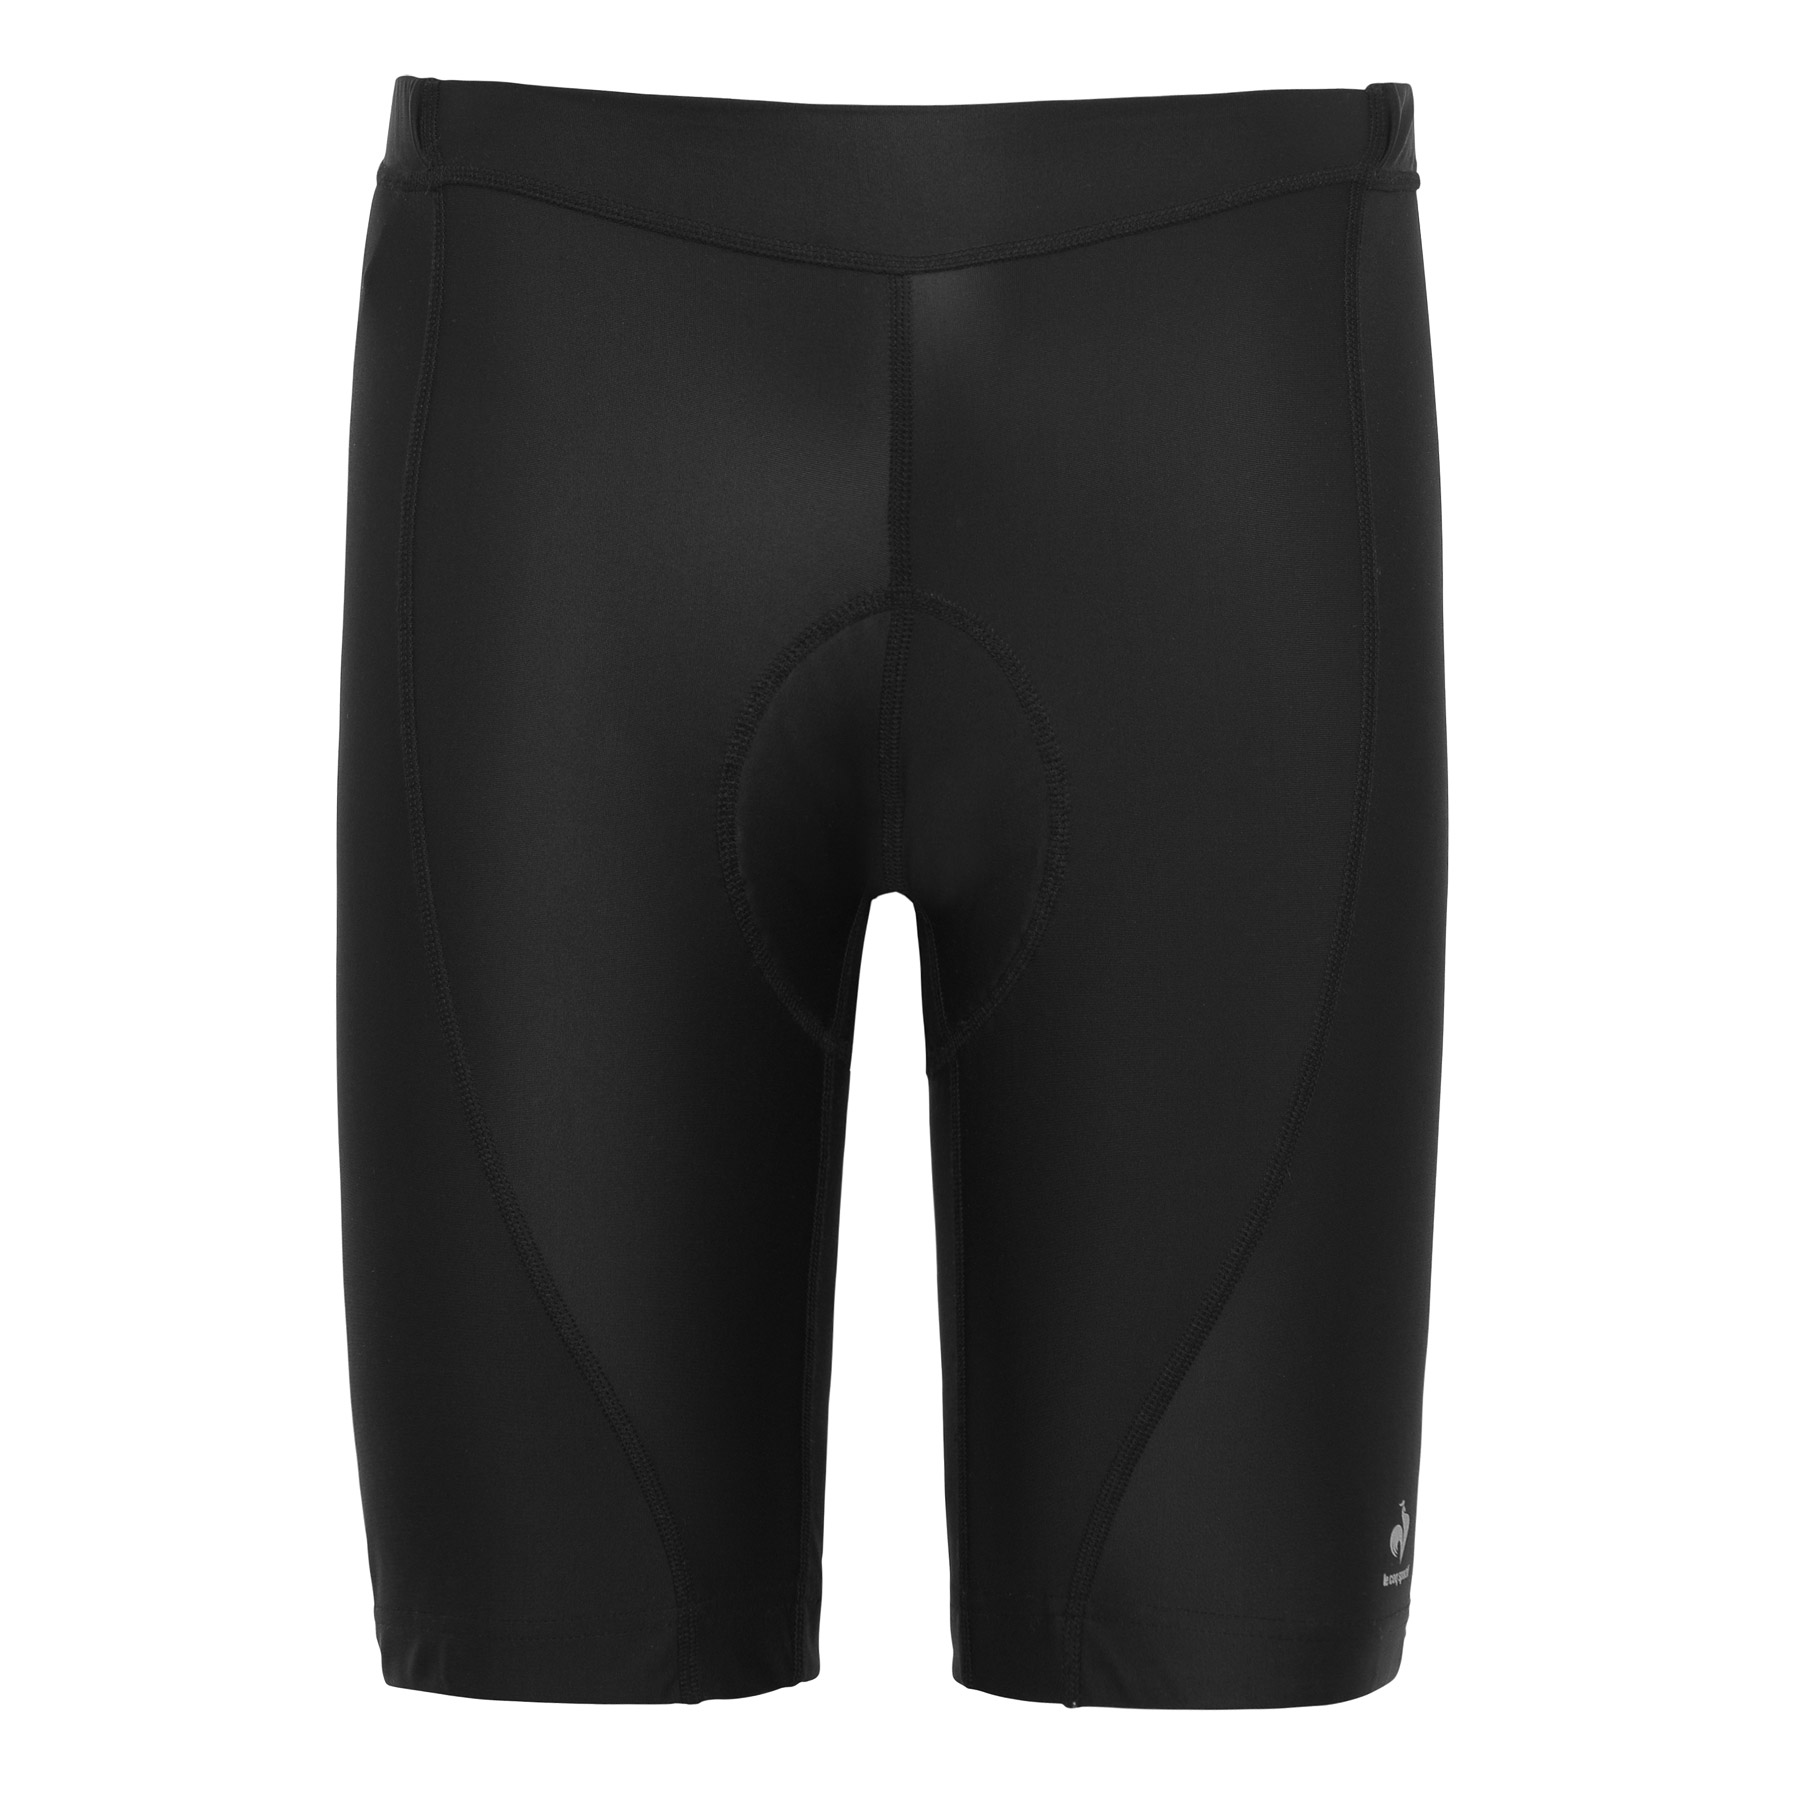 Le Coq Sportif Performance Nopton Shorts - Black